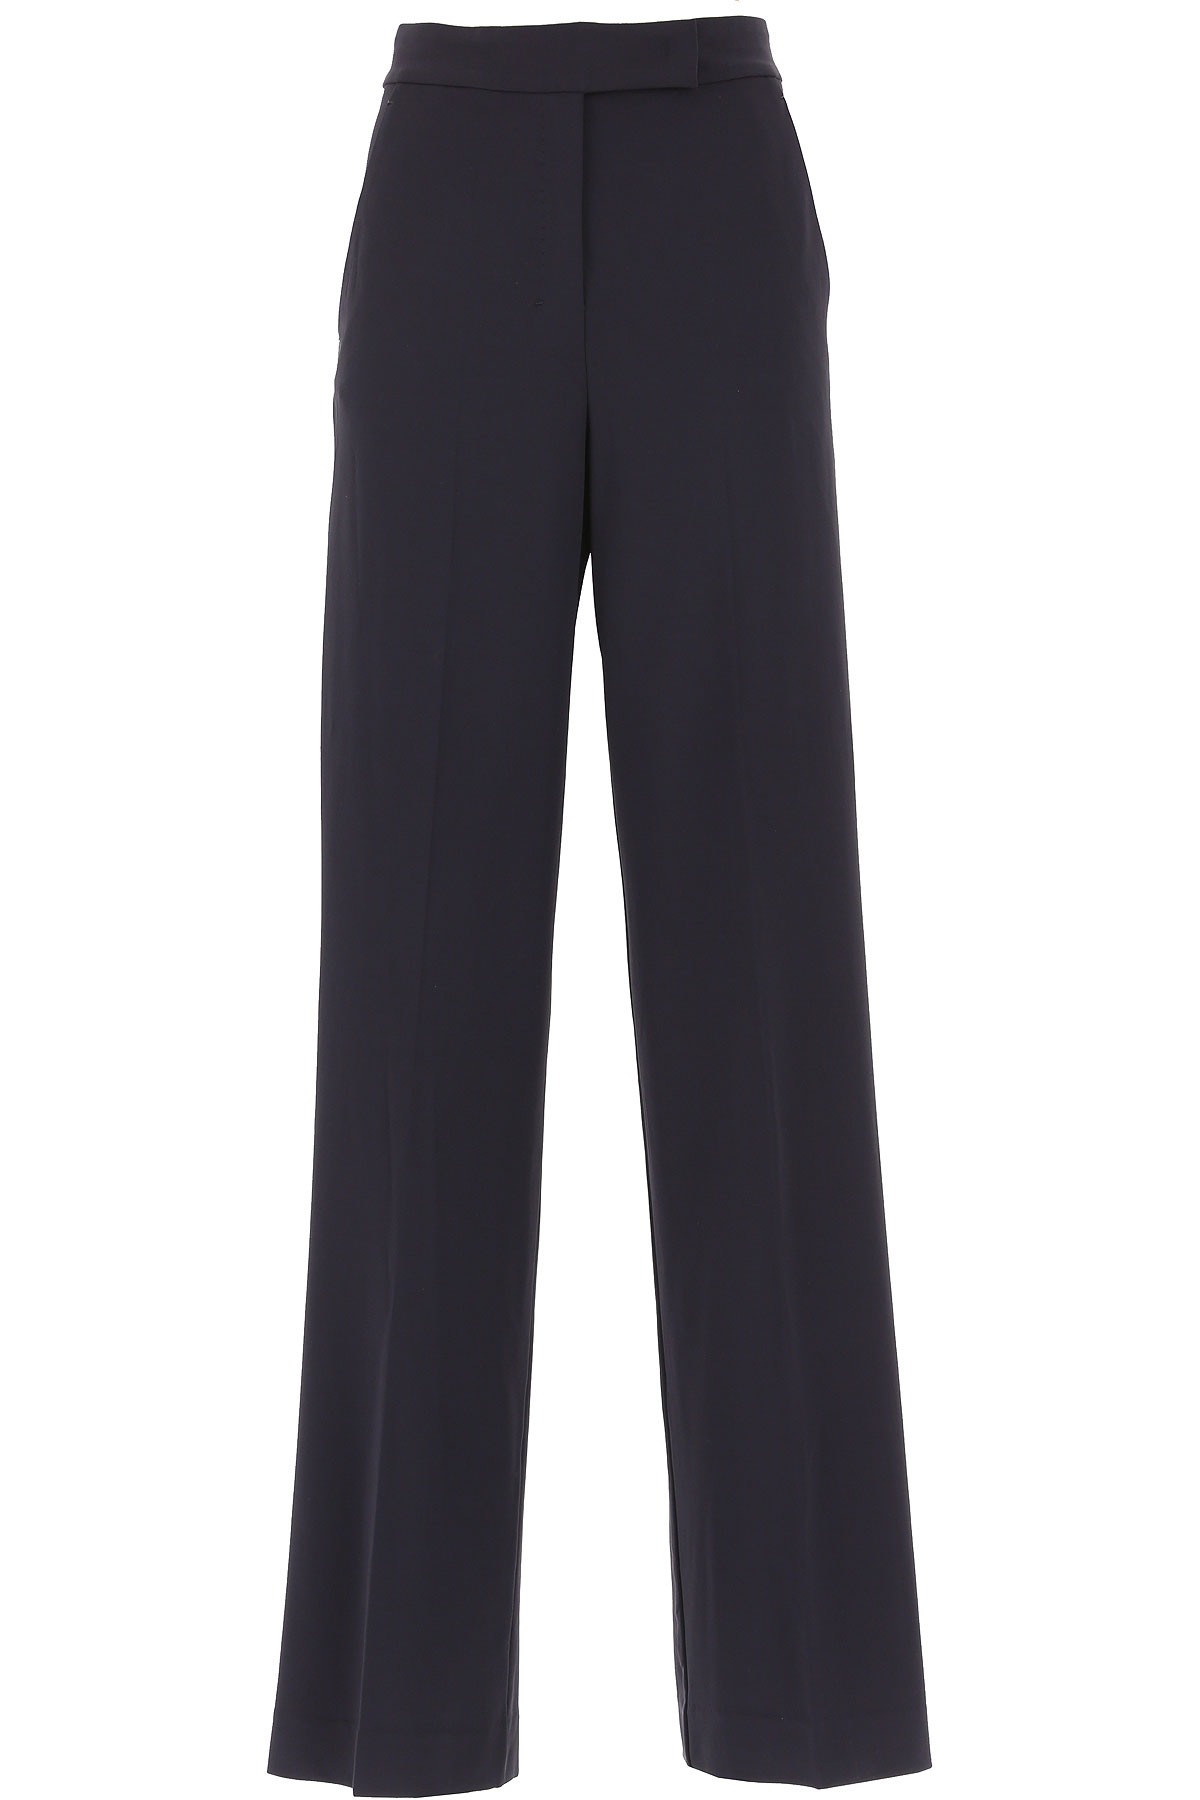 Max Mara Pants for Women On Sale, Midnight Blue, Viscose, 2019, 26 28